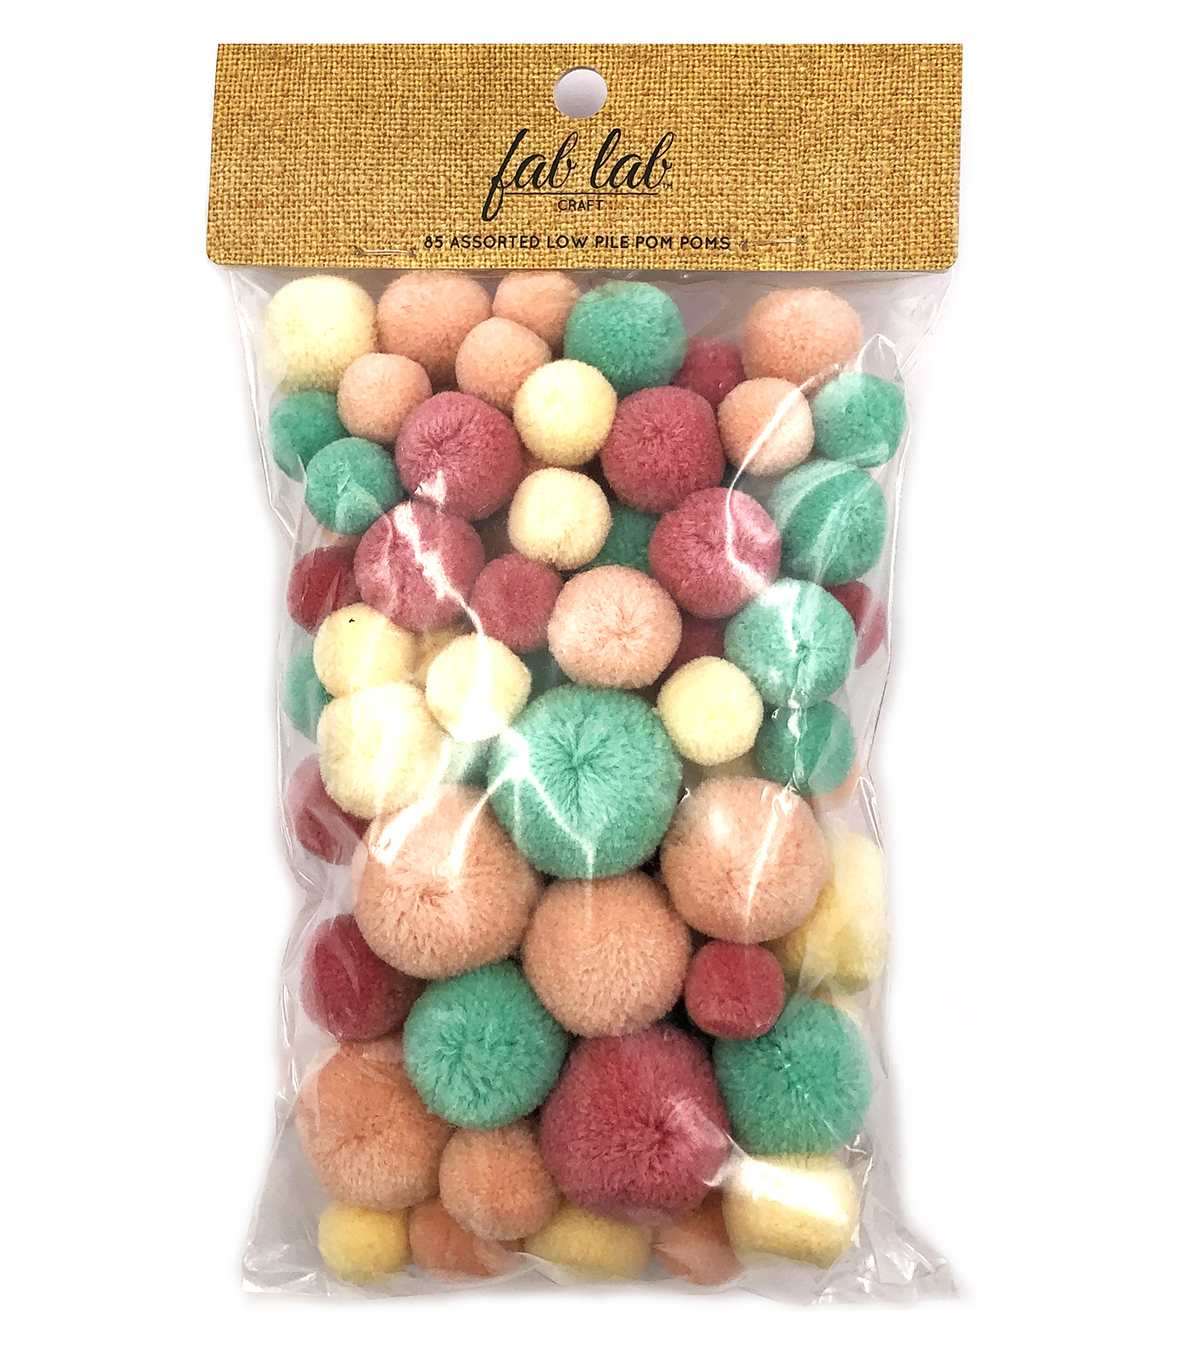 Fab Lab Craft 85 pk Assorted Low Pile Pom Poms